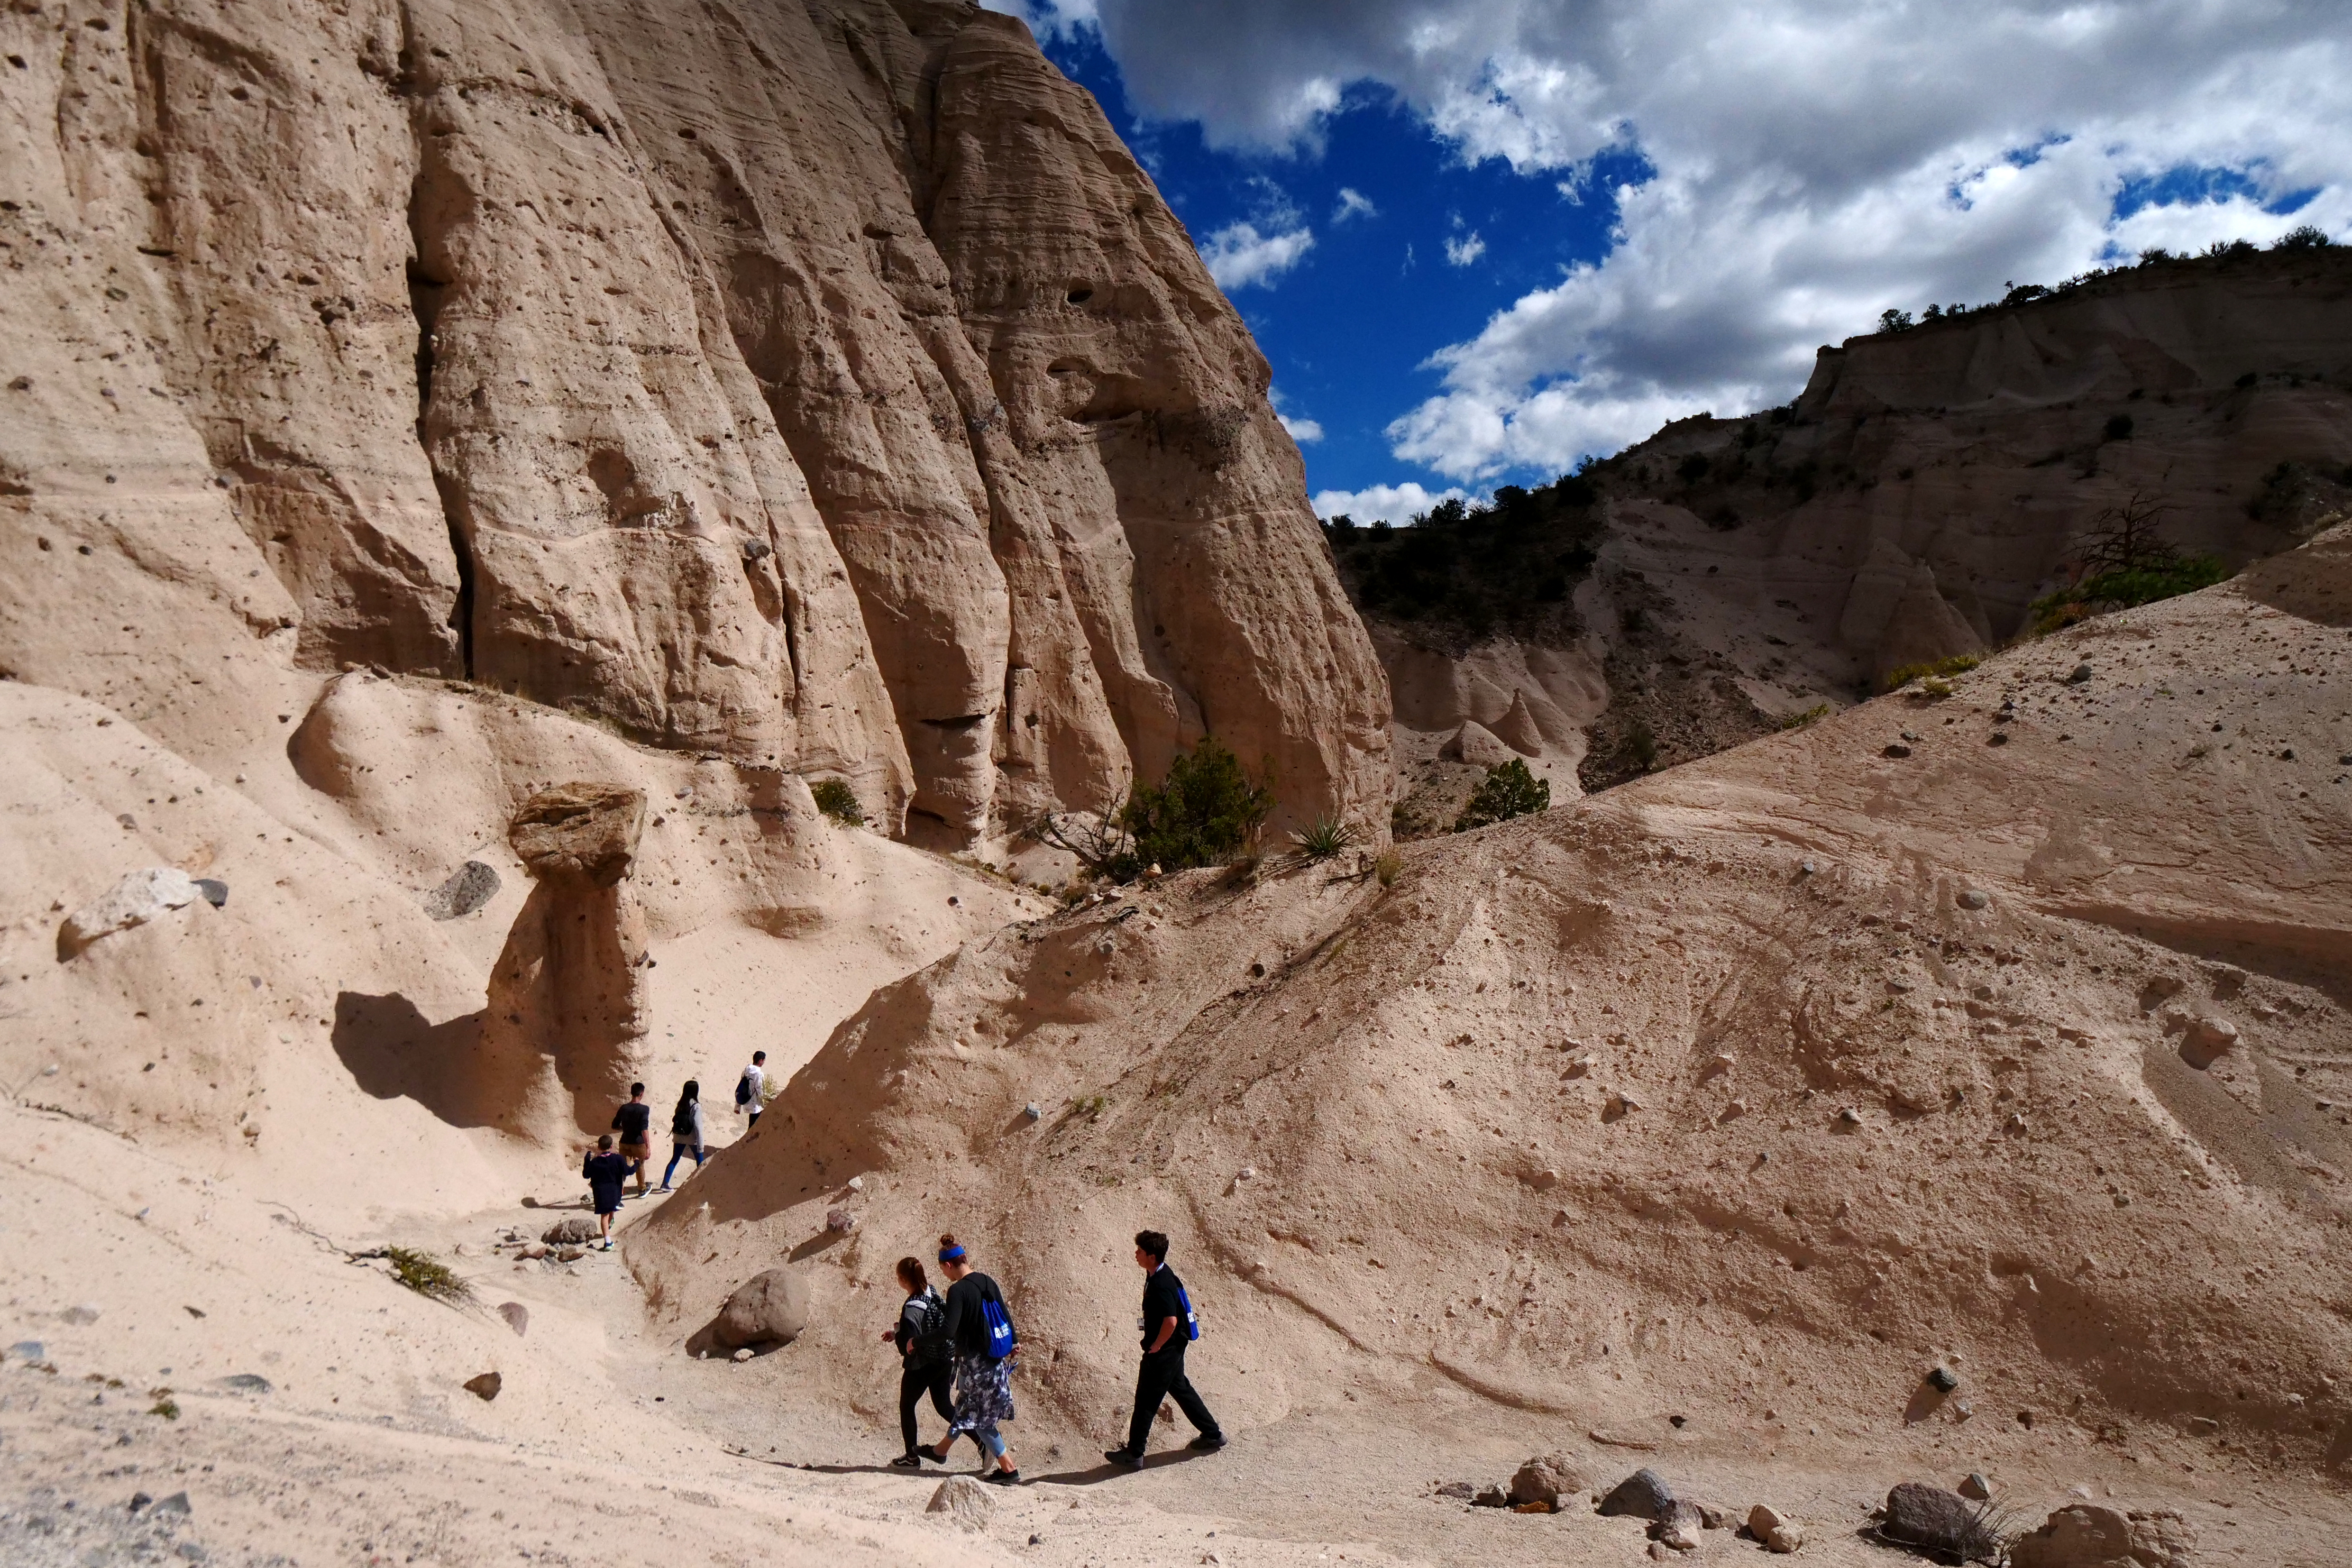 The main loop trail at Kasha-Katuwe Tent Rocks National Monument. Photo by Maddie Meyer via Getty Image.